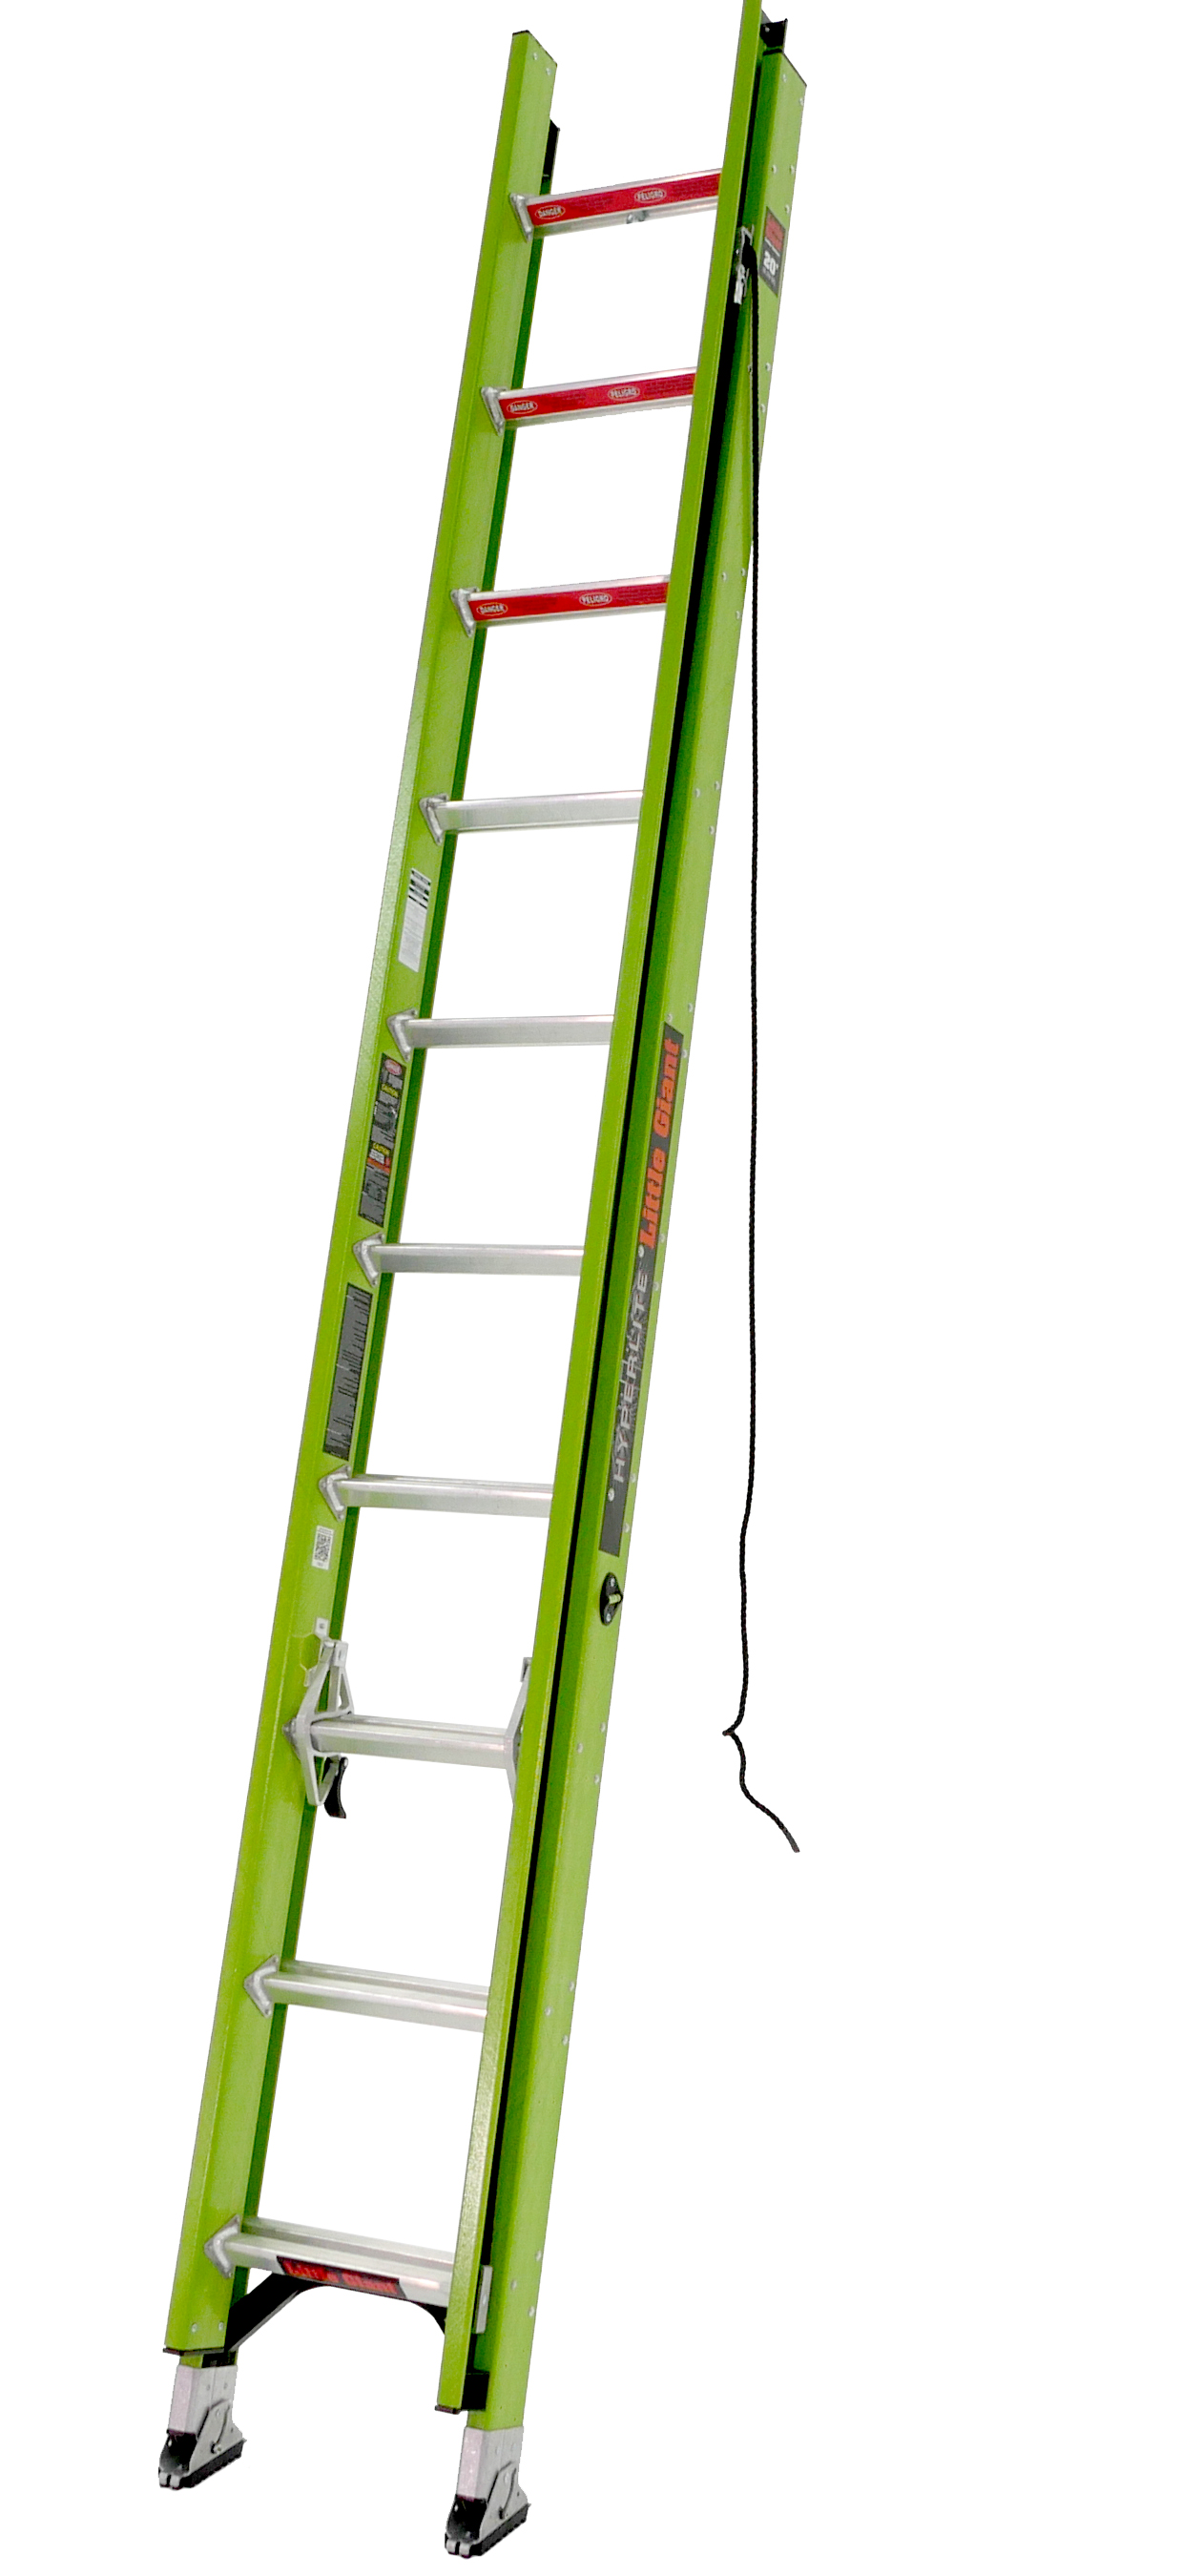 Little Giant HyperLite, 16' Type IA 300 lbs rated, fiberglass extension ladder by Wing Enterprises, Inc.